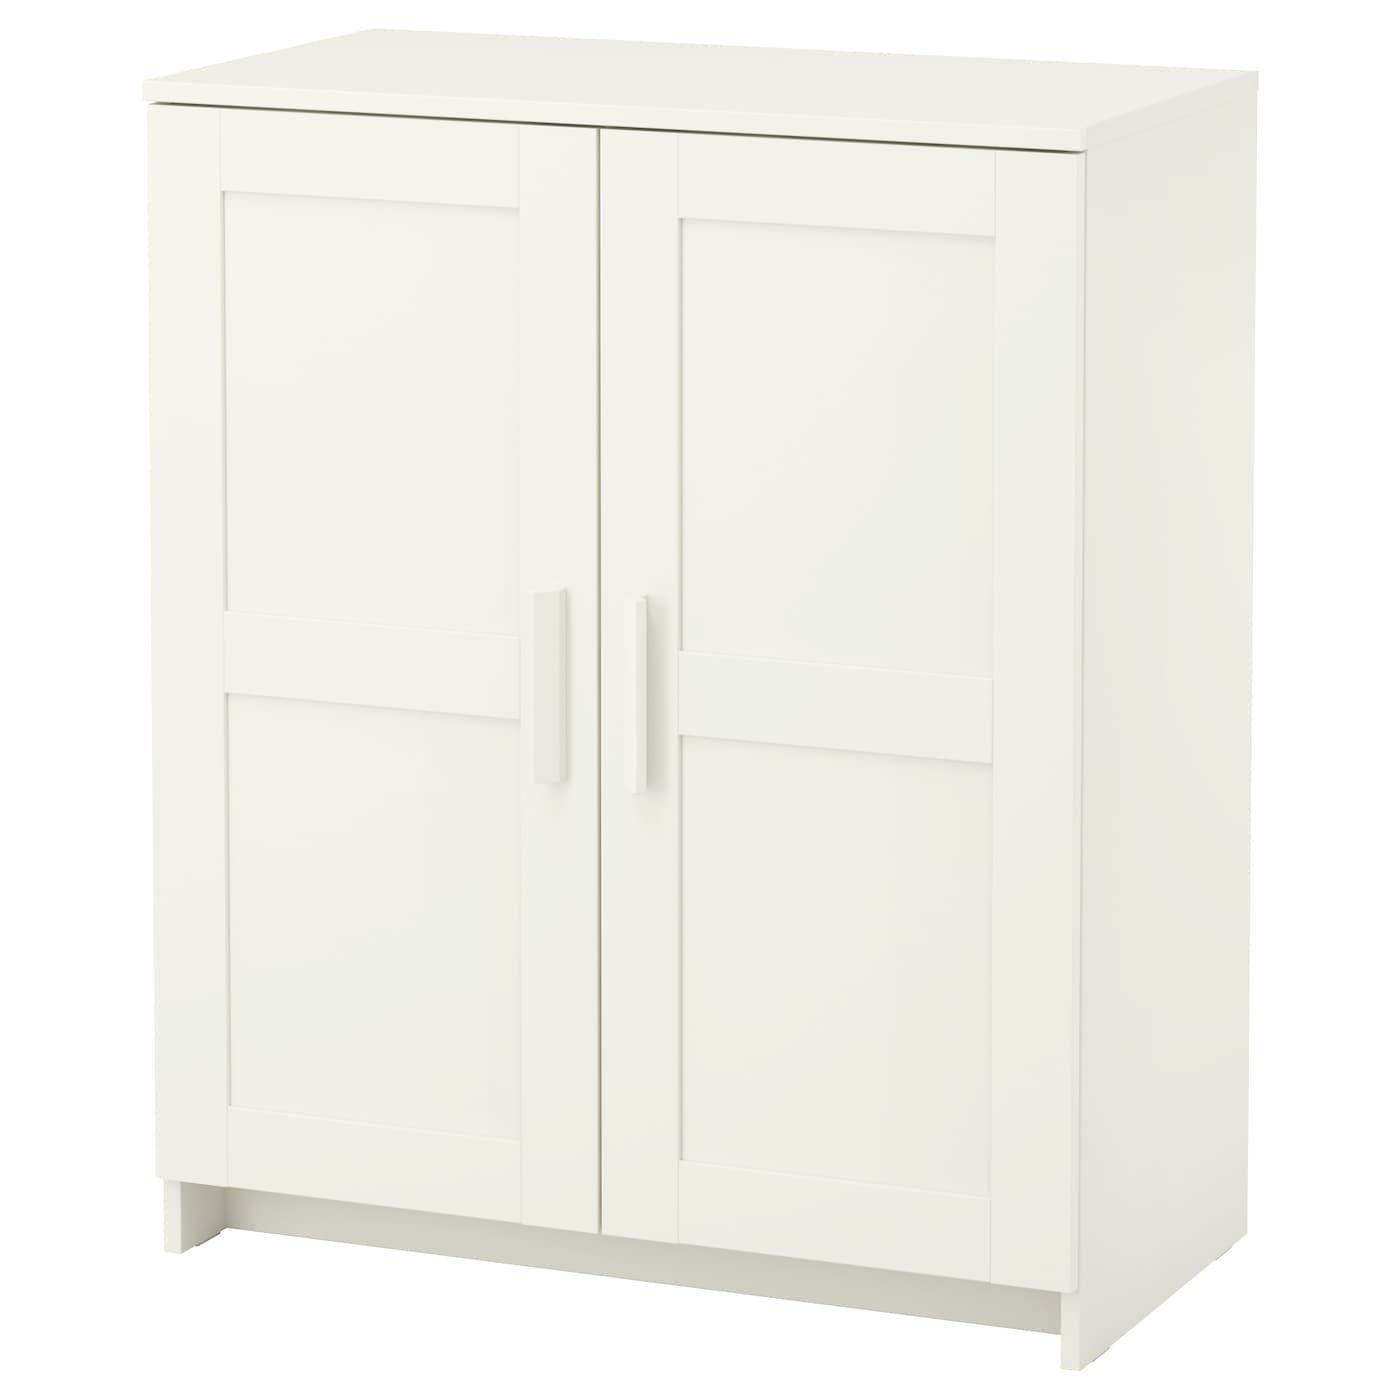 Brimnes cabinet with doors white 78x95 cm ikea - Ikea cabinet doors on existing cabinets ...